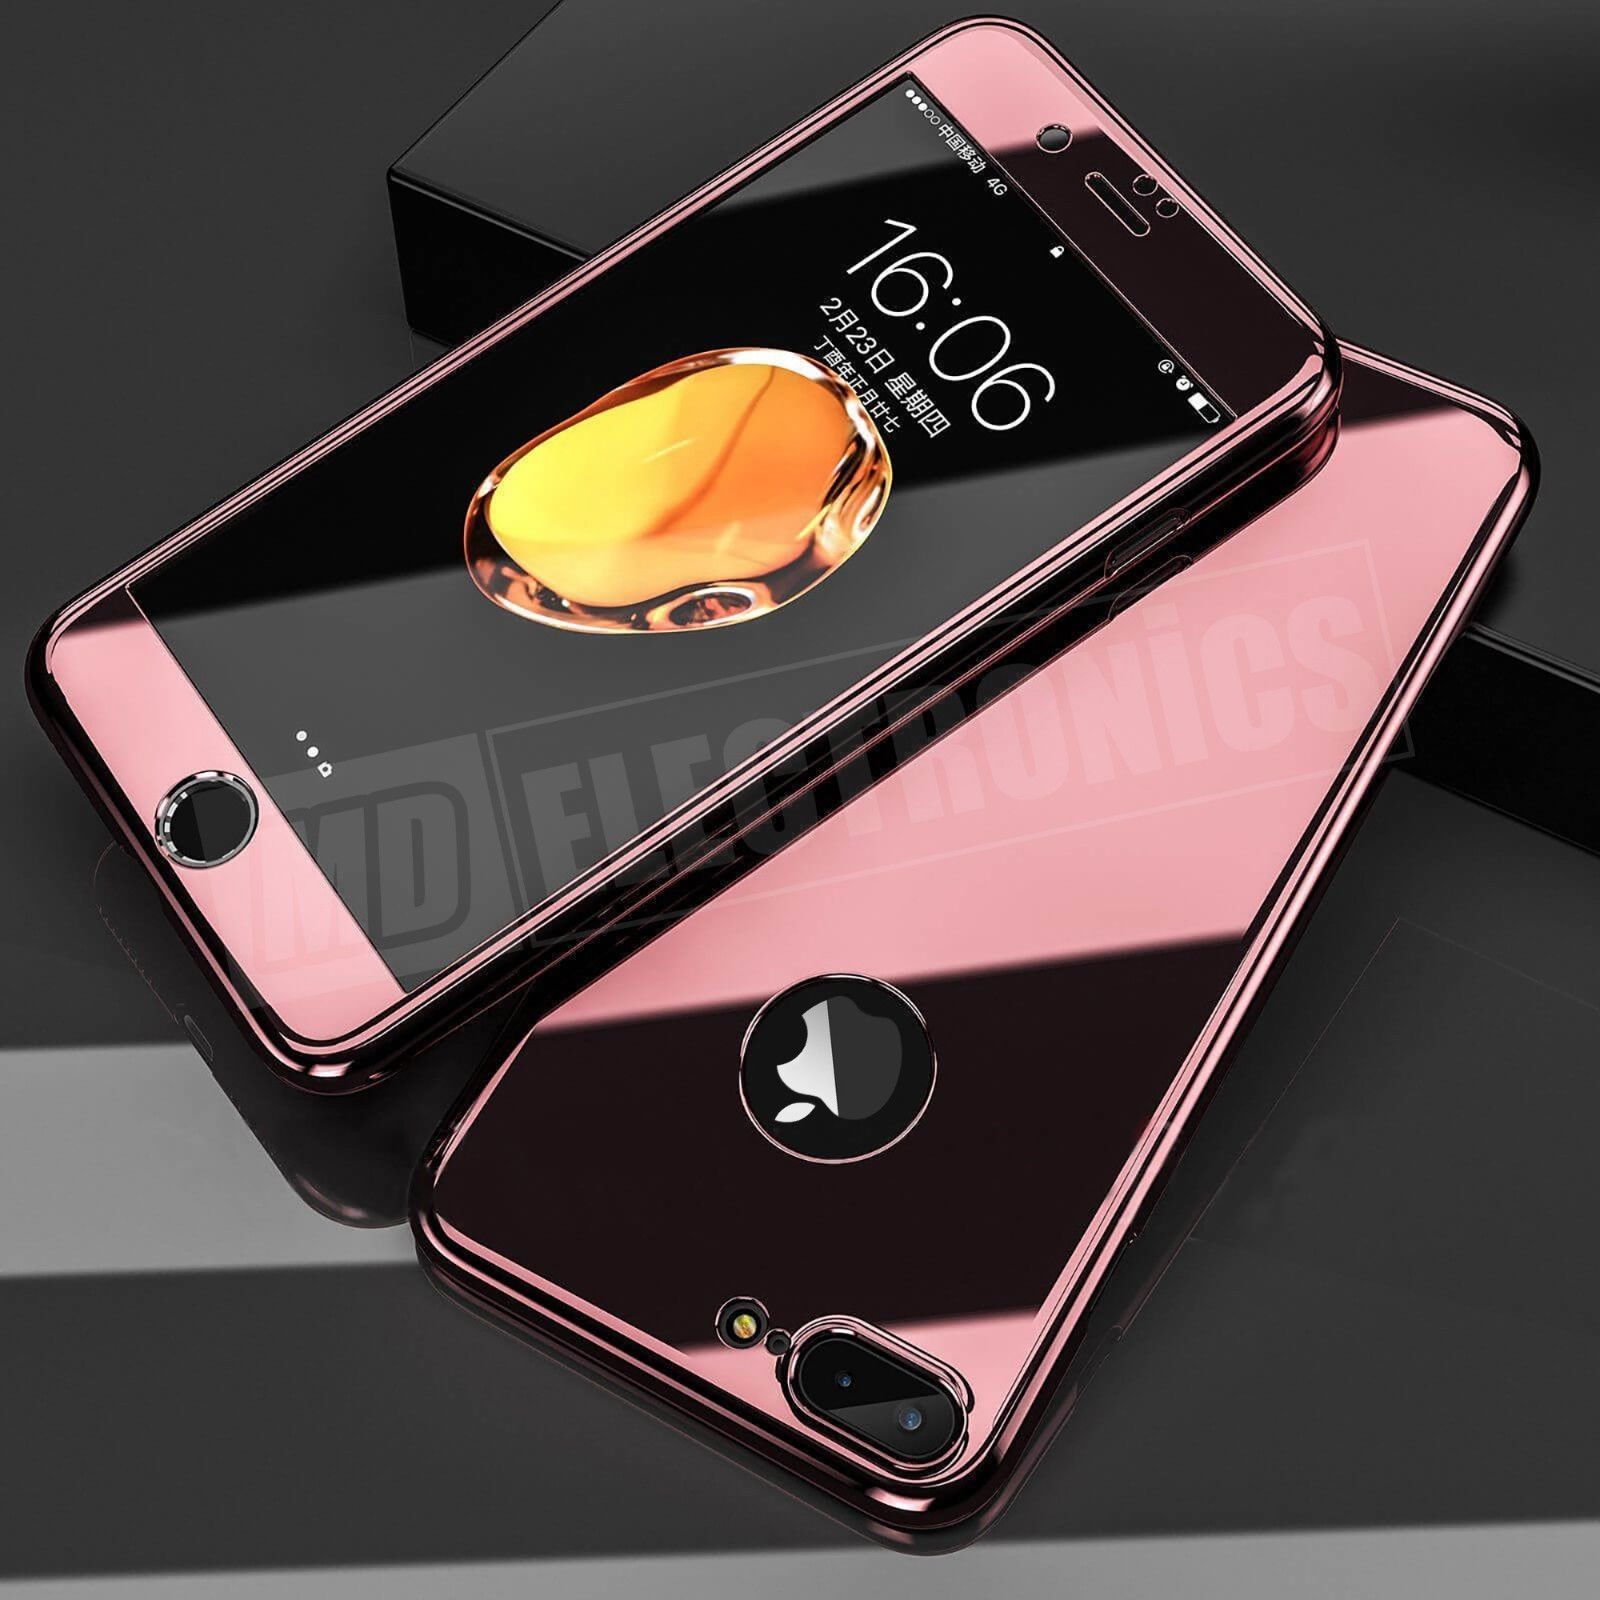 360° Full Body Shockproof Case Mirror Cover+Tempered Glass For iPhone XS  Max XR d18f0b734c7b